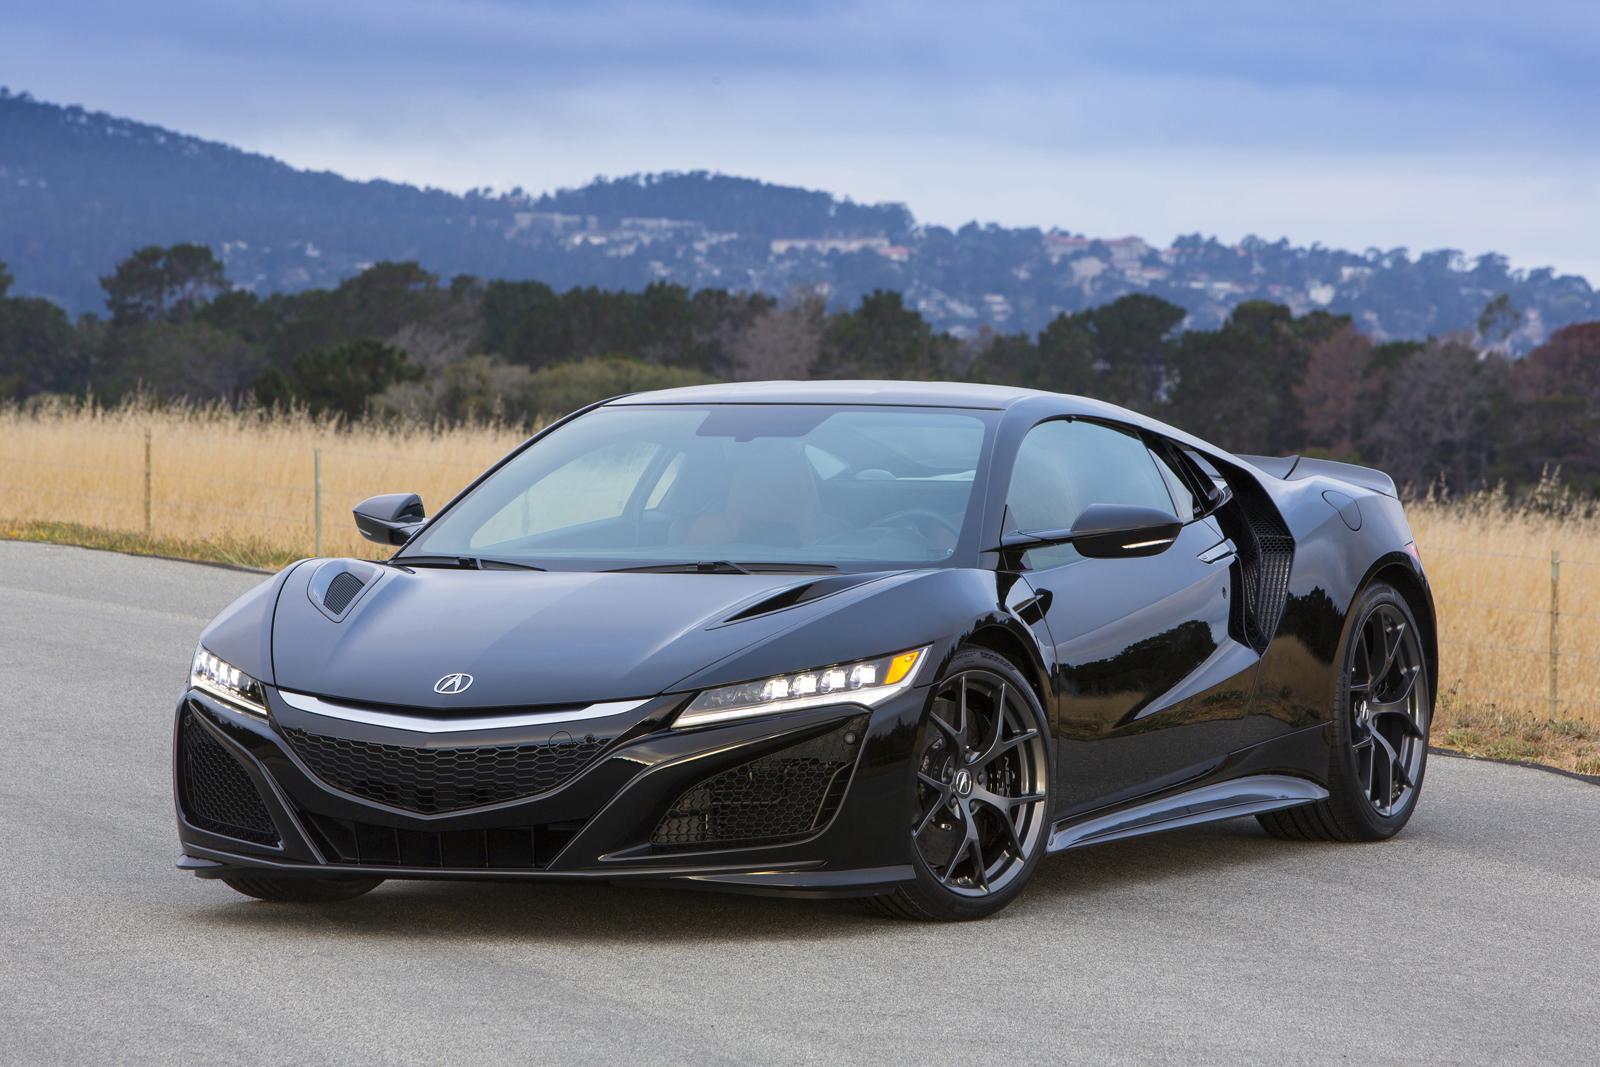 2017 acura nsx features 573 hp, arriving spring 2016